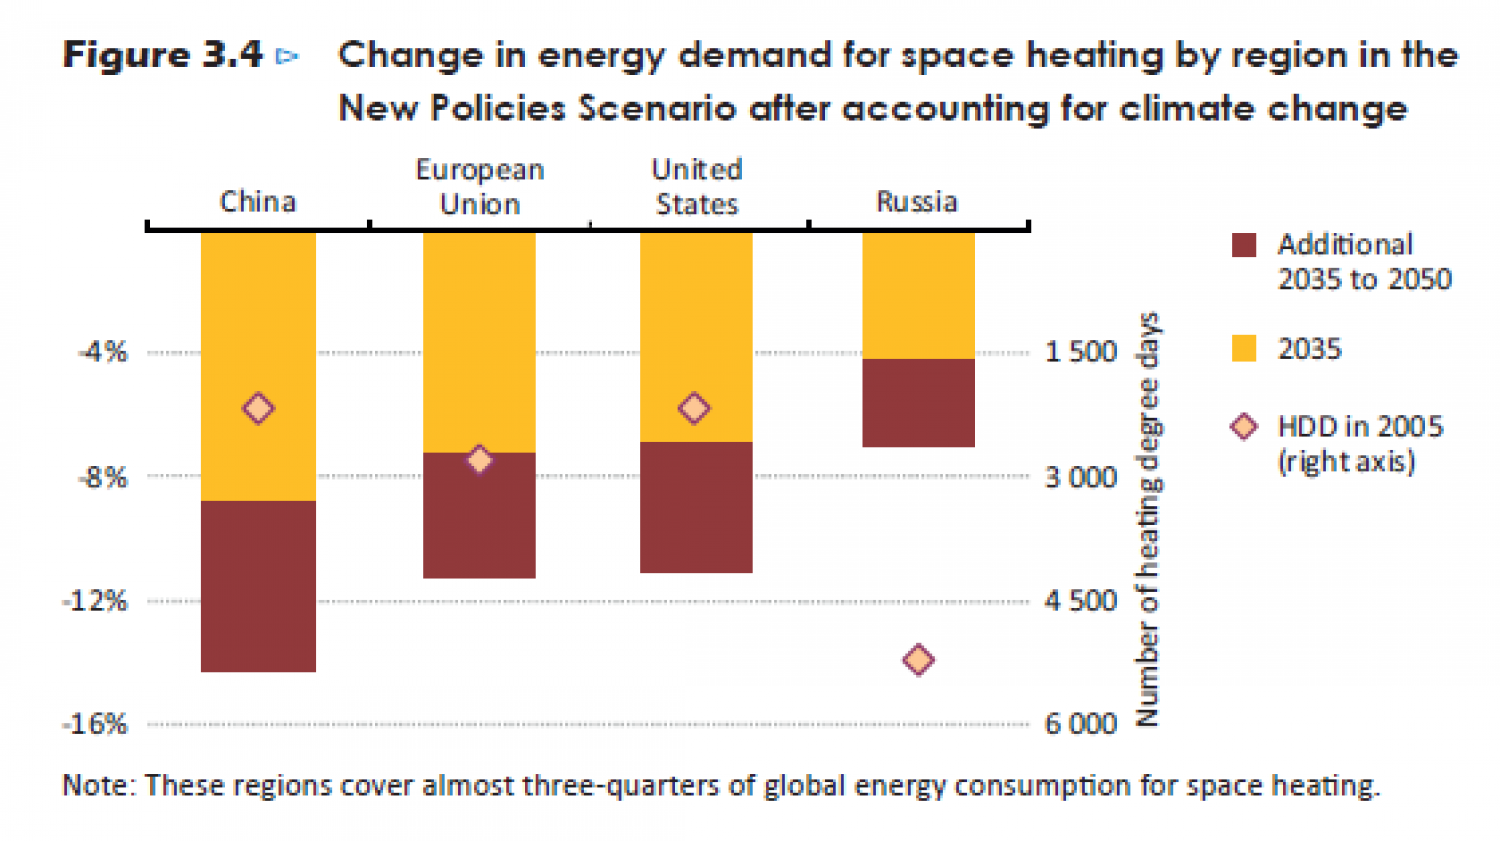 Change in energy demand for space heating by region in the New Policies Scenario after accounting for climate change Infographic